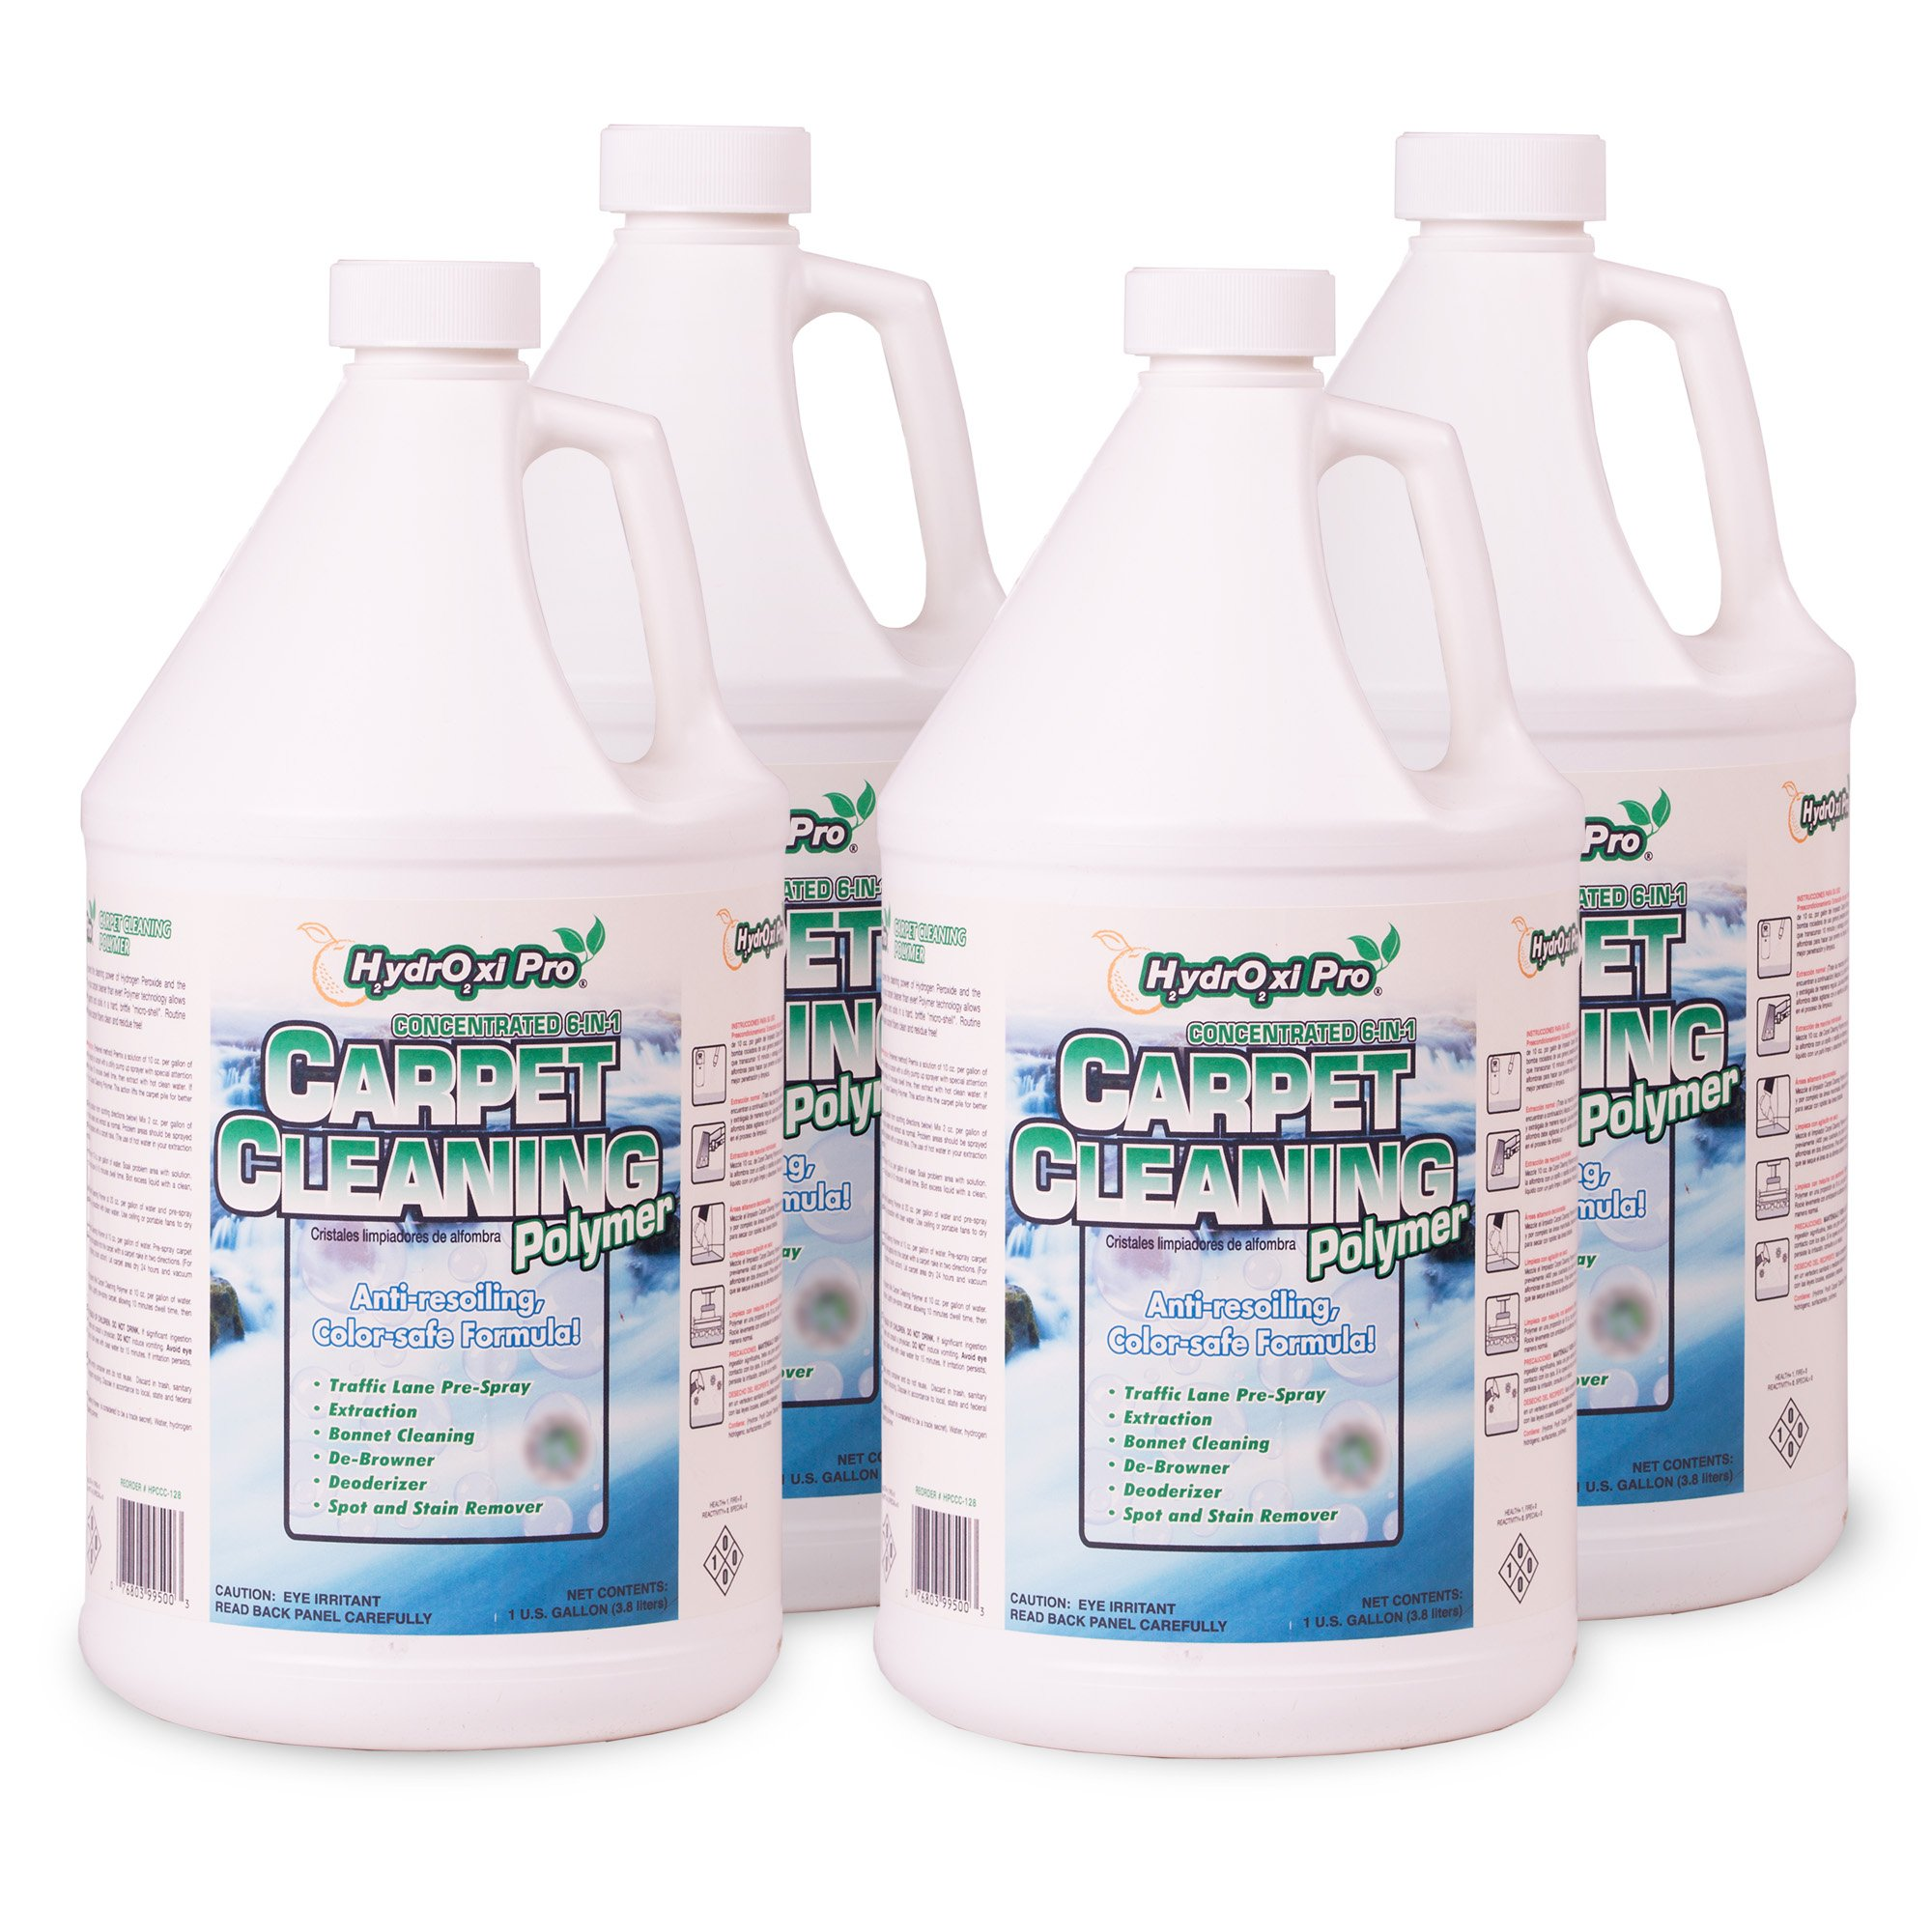 HYDROXI PRO CARPET CLEANING POLMER CASE OF 4 128 OZ BOTTLES